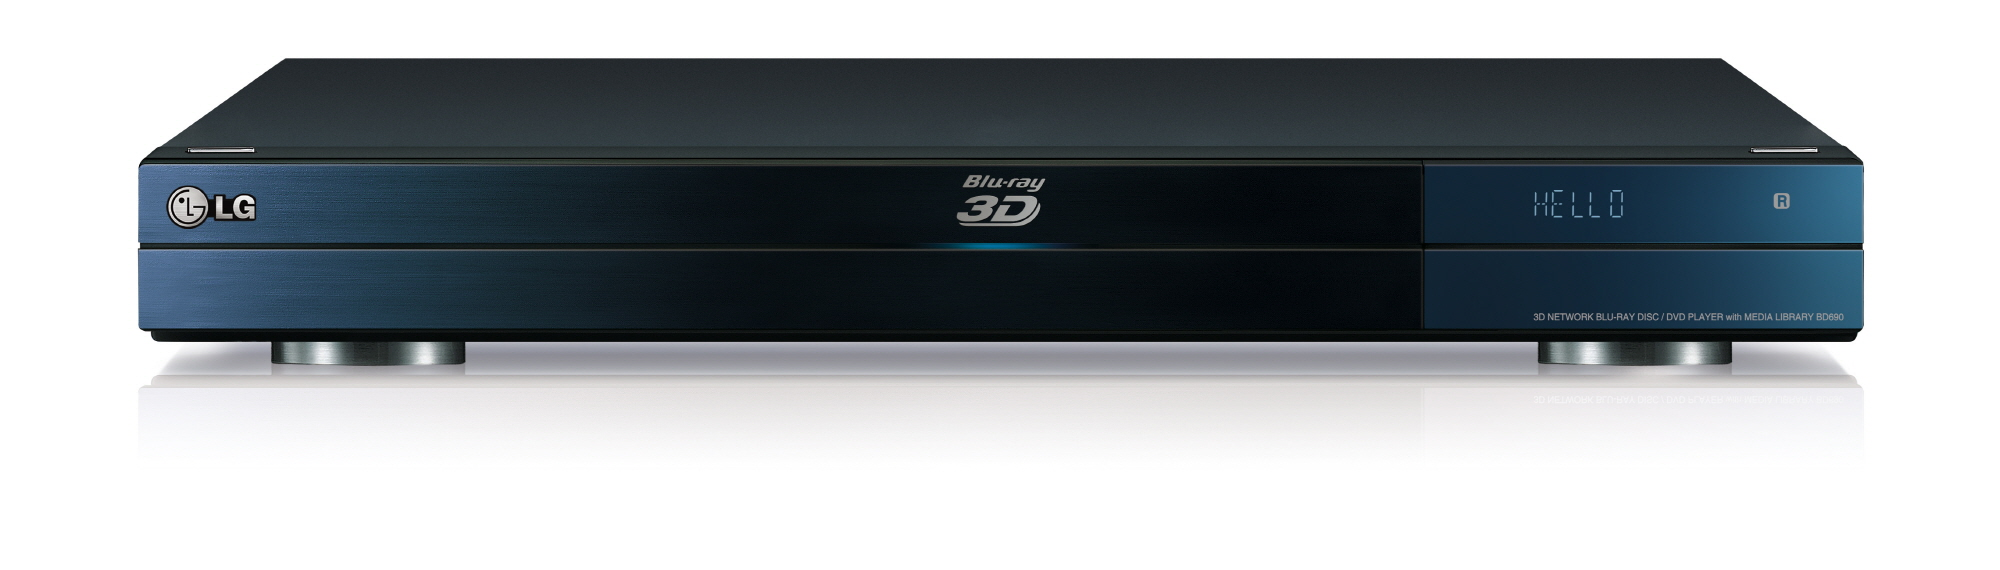 Front view of LG 3D Network Blu-rayTM Disc Player model BD690